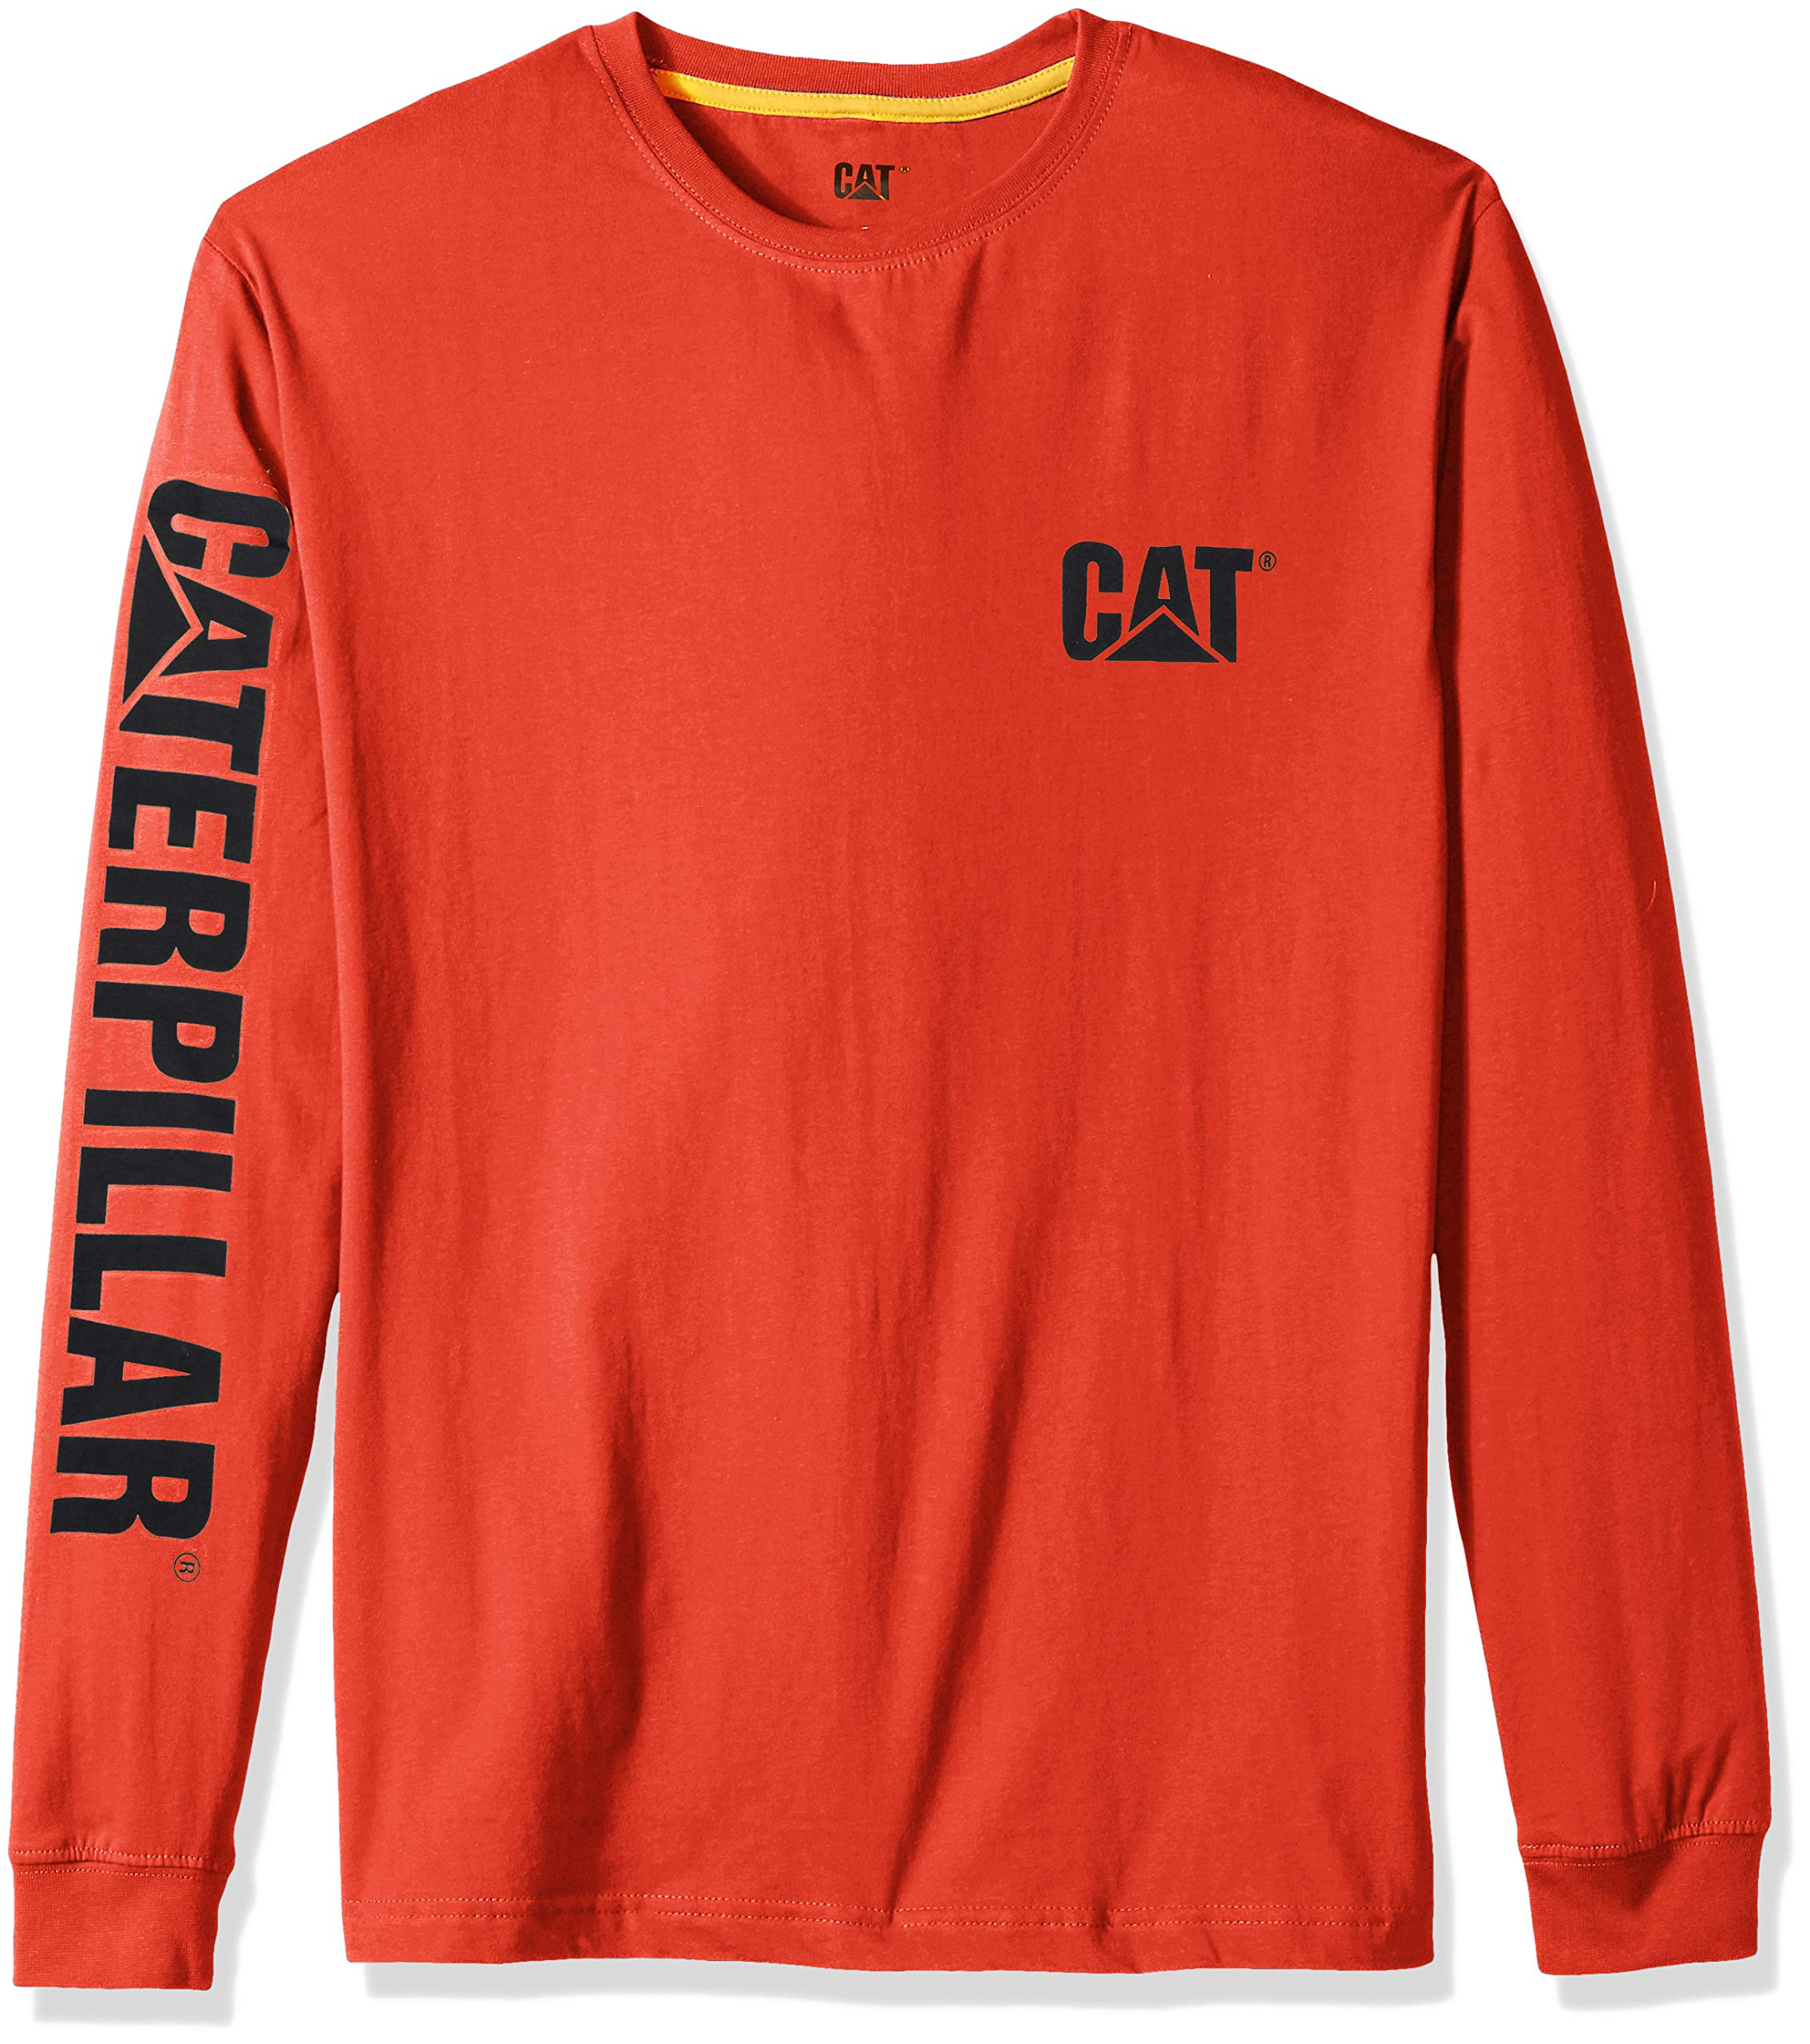 Caterpillar Mens Cat Trademark Premium Cotton T-Shirt T-Shirt